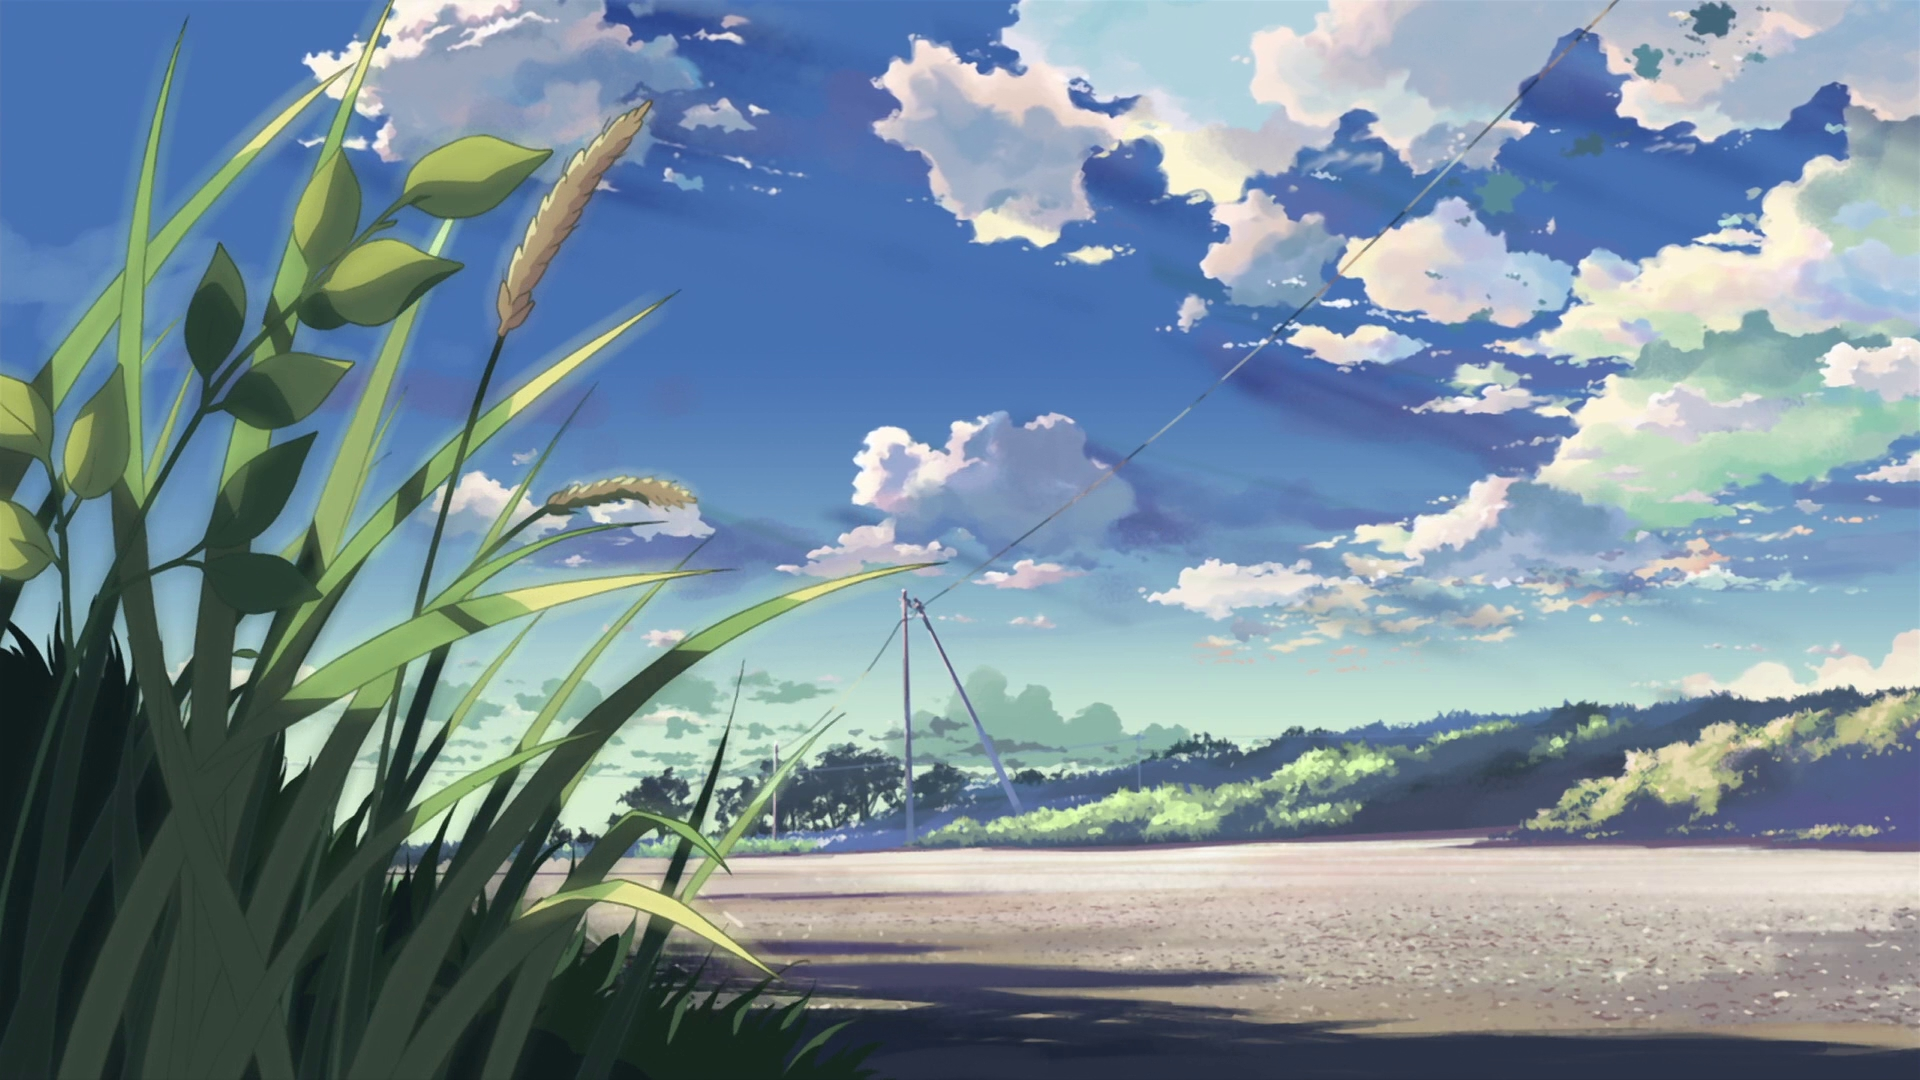 Anime Landscape Wallpaper HD | PixelsTalk Net